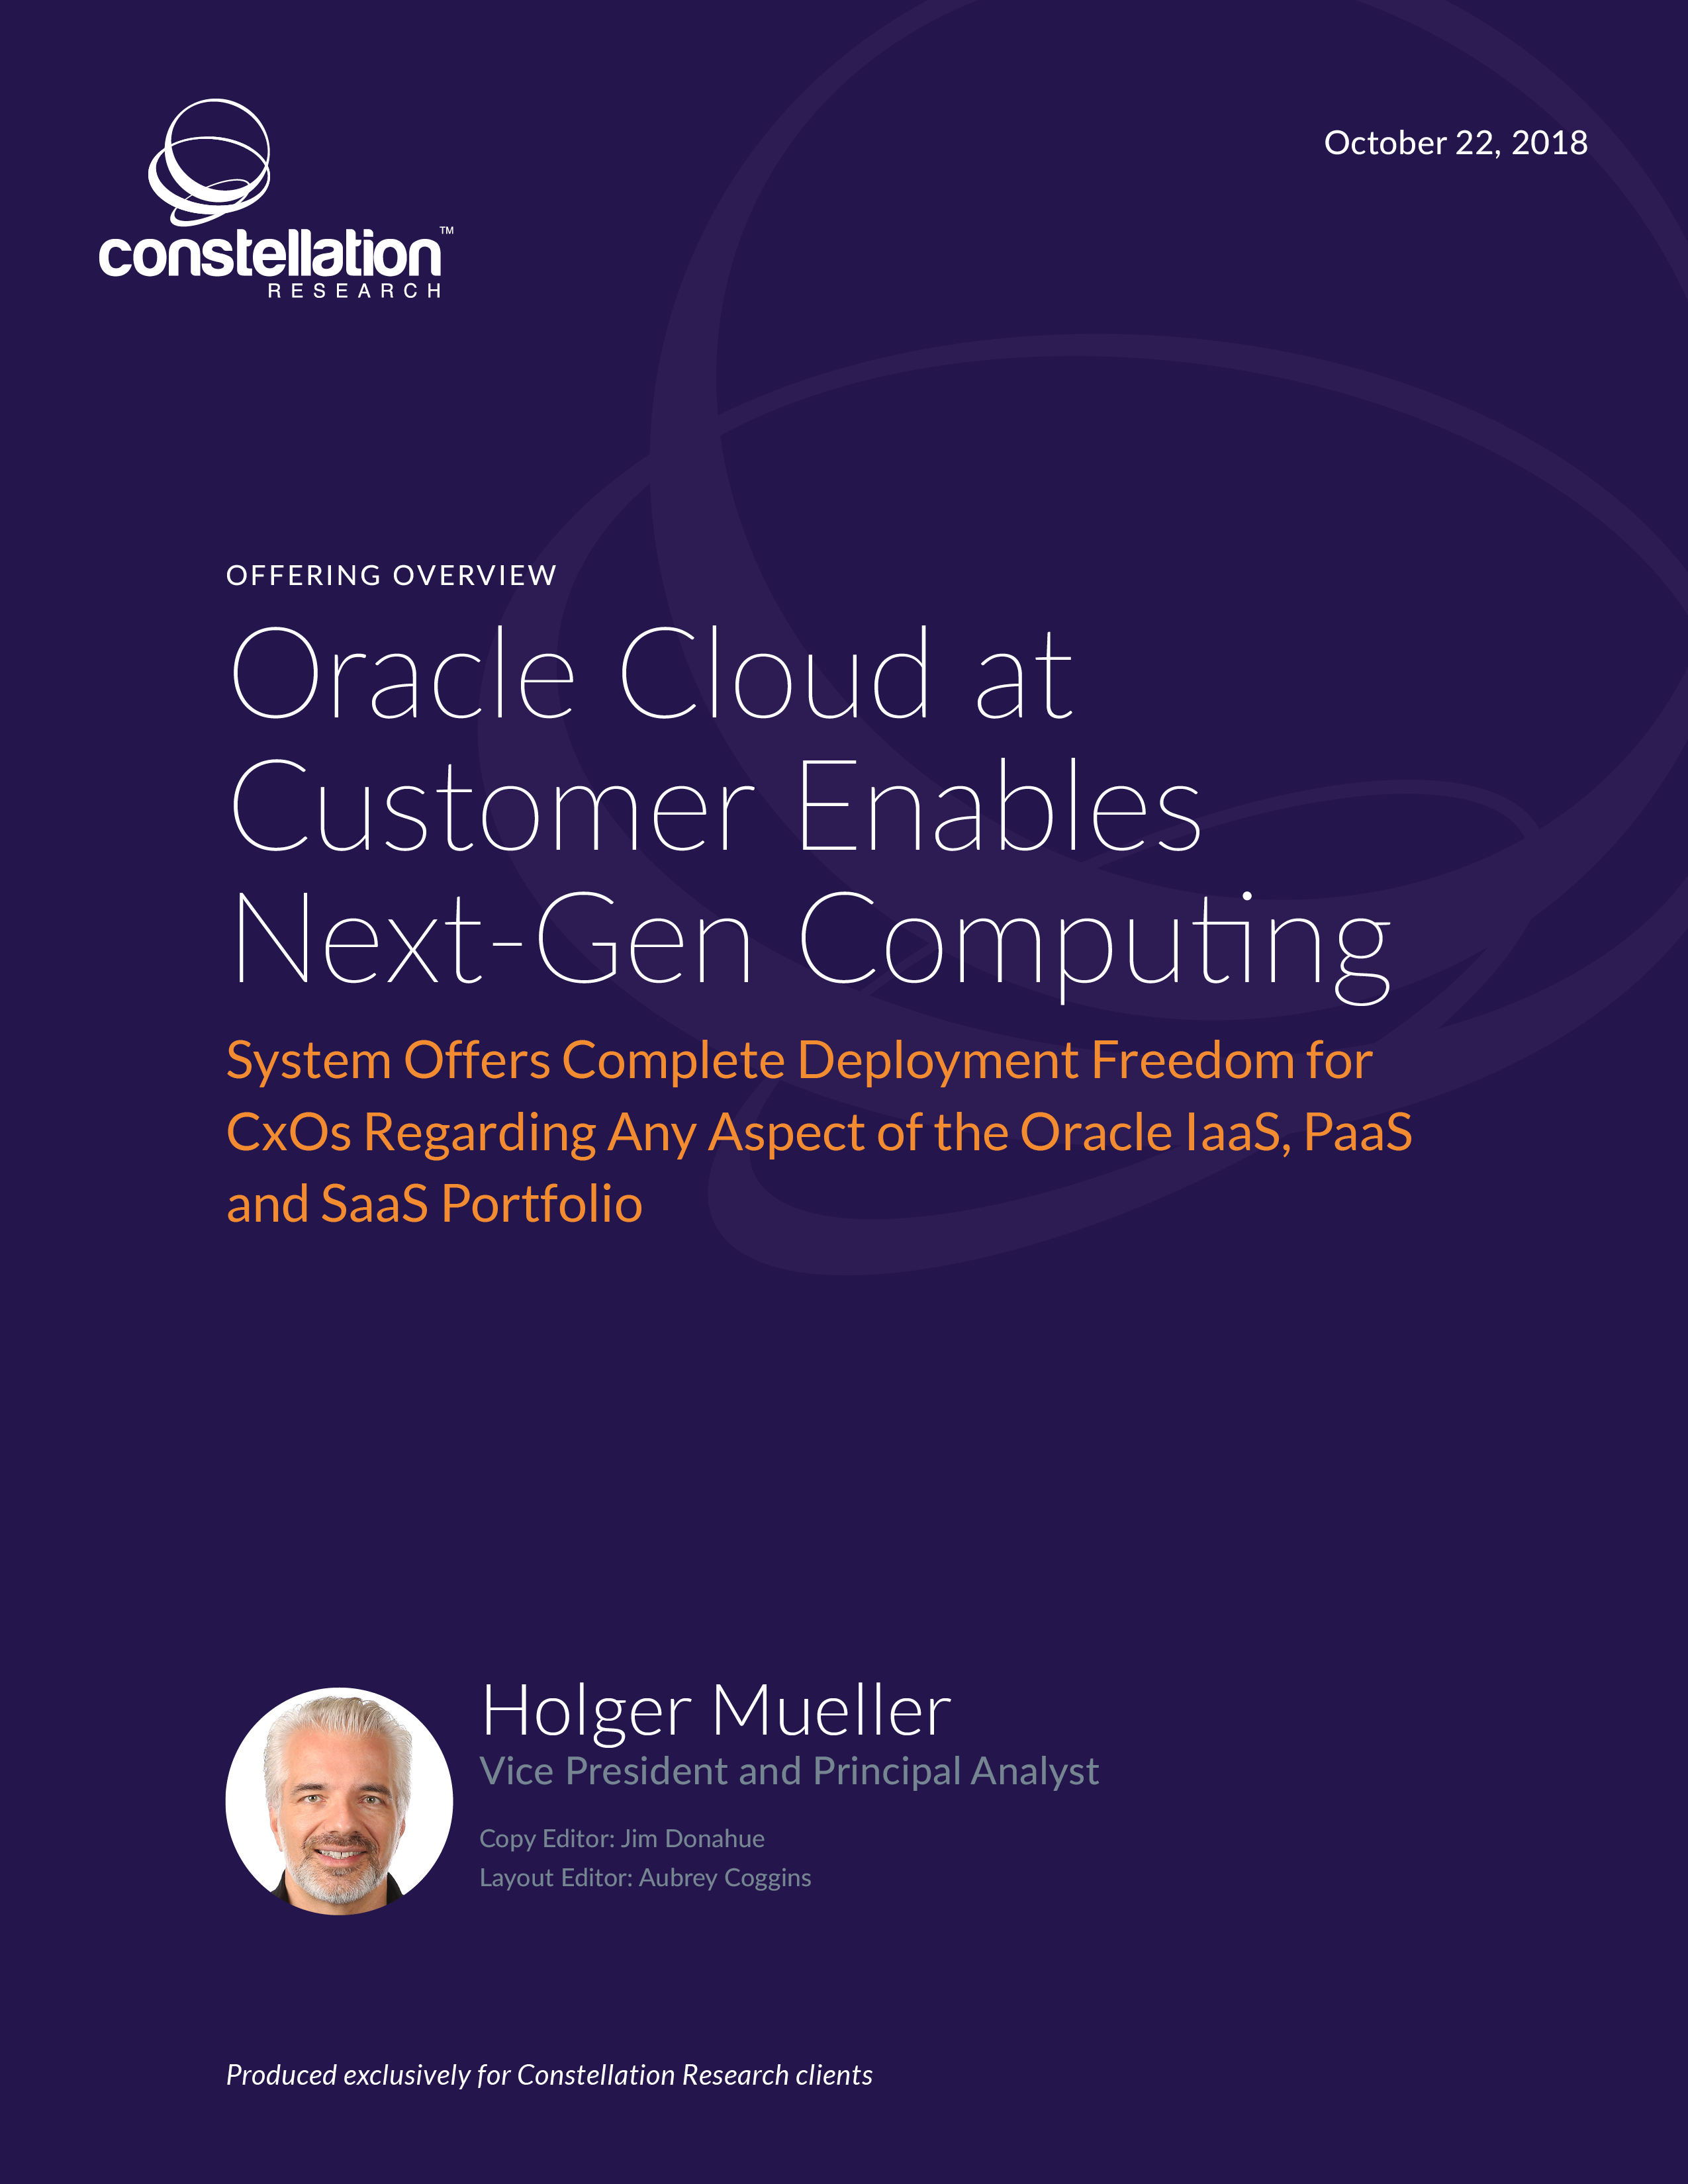 Oracle Cloud at Customer Offering Overview